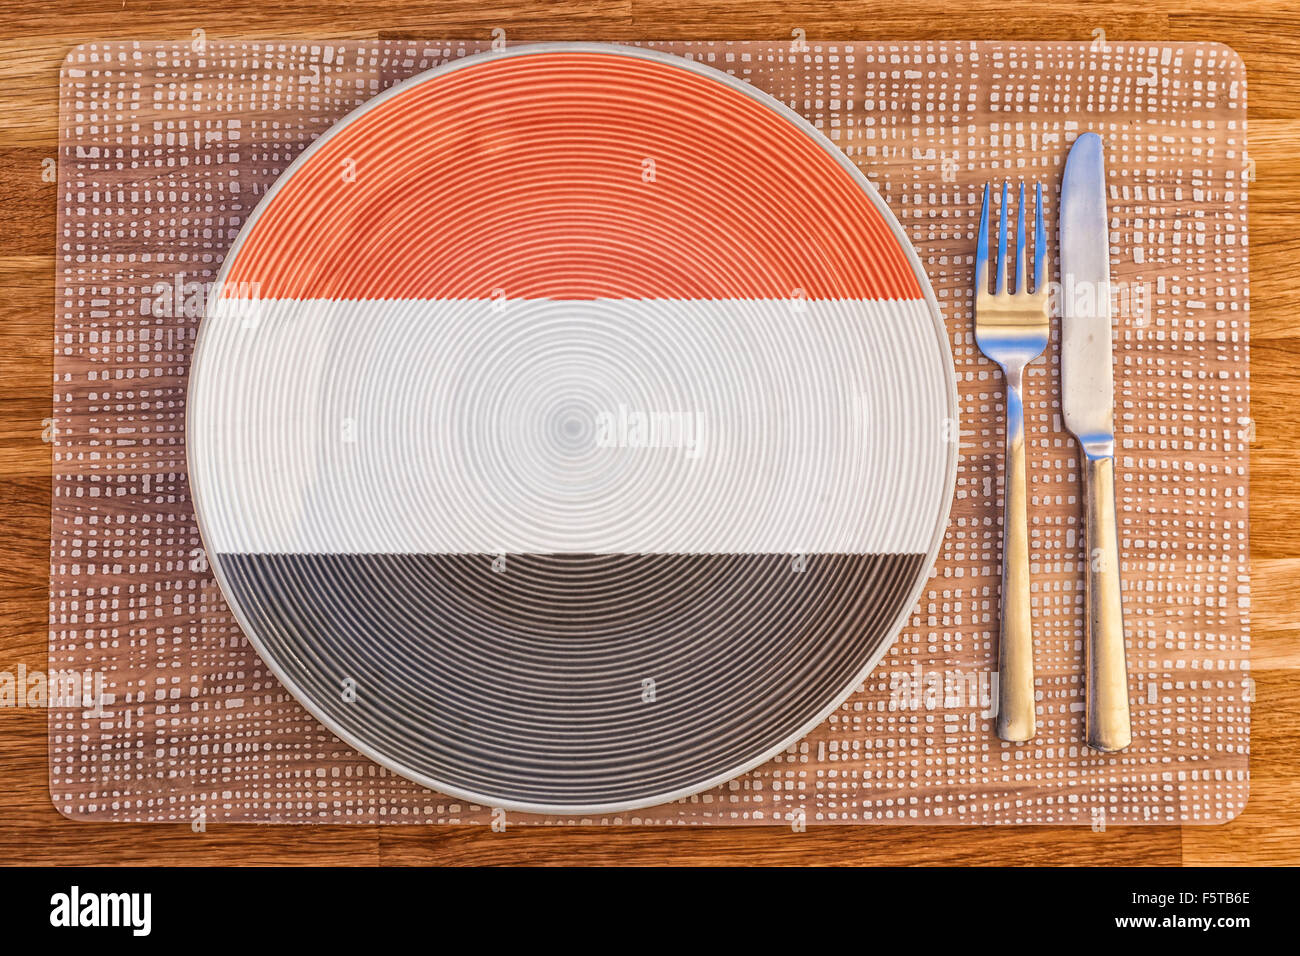 Dinner plate with the flag of Yemen on it for your international food and drink concepts. - Stock Image